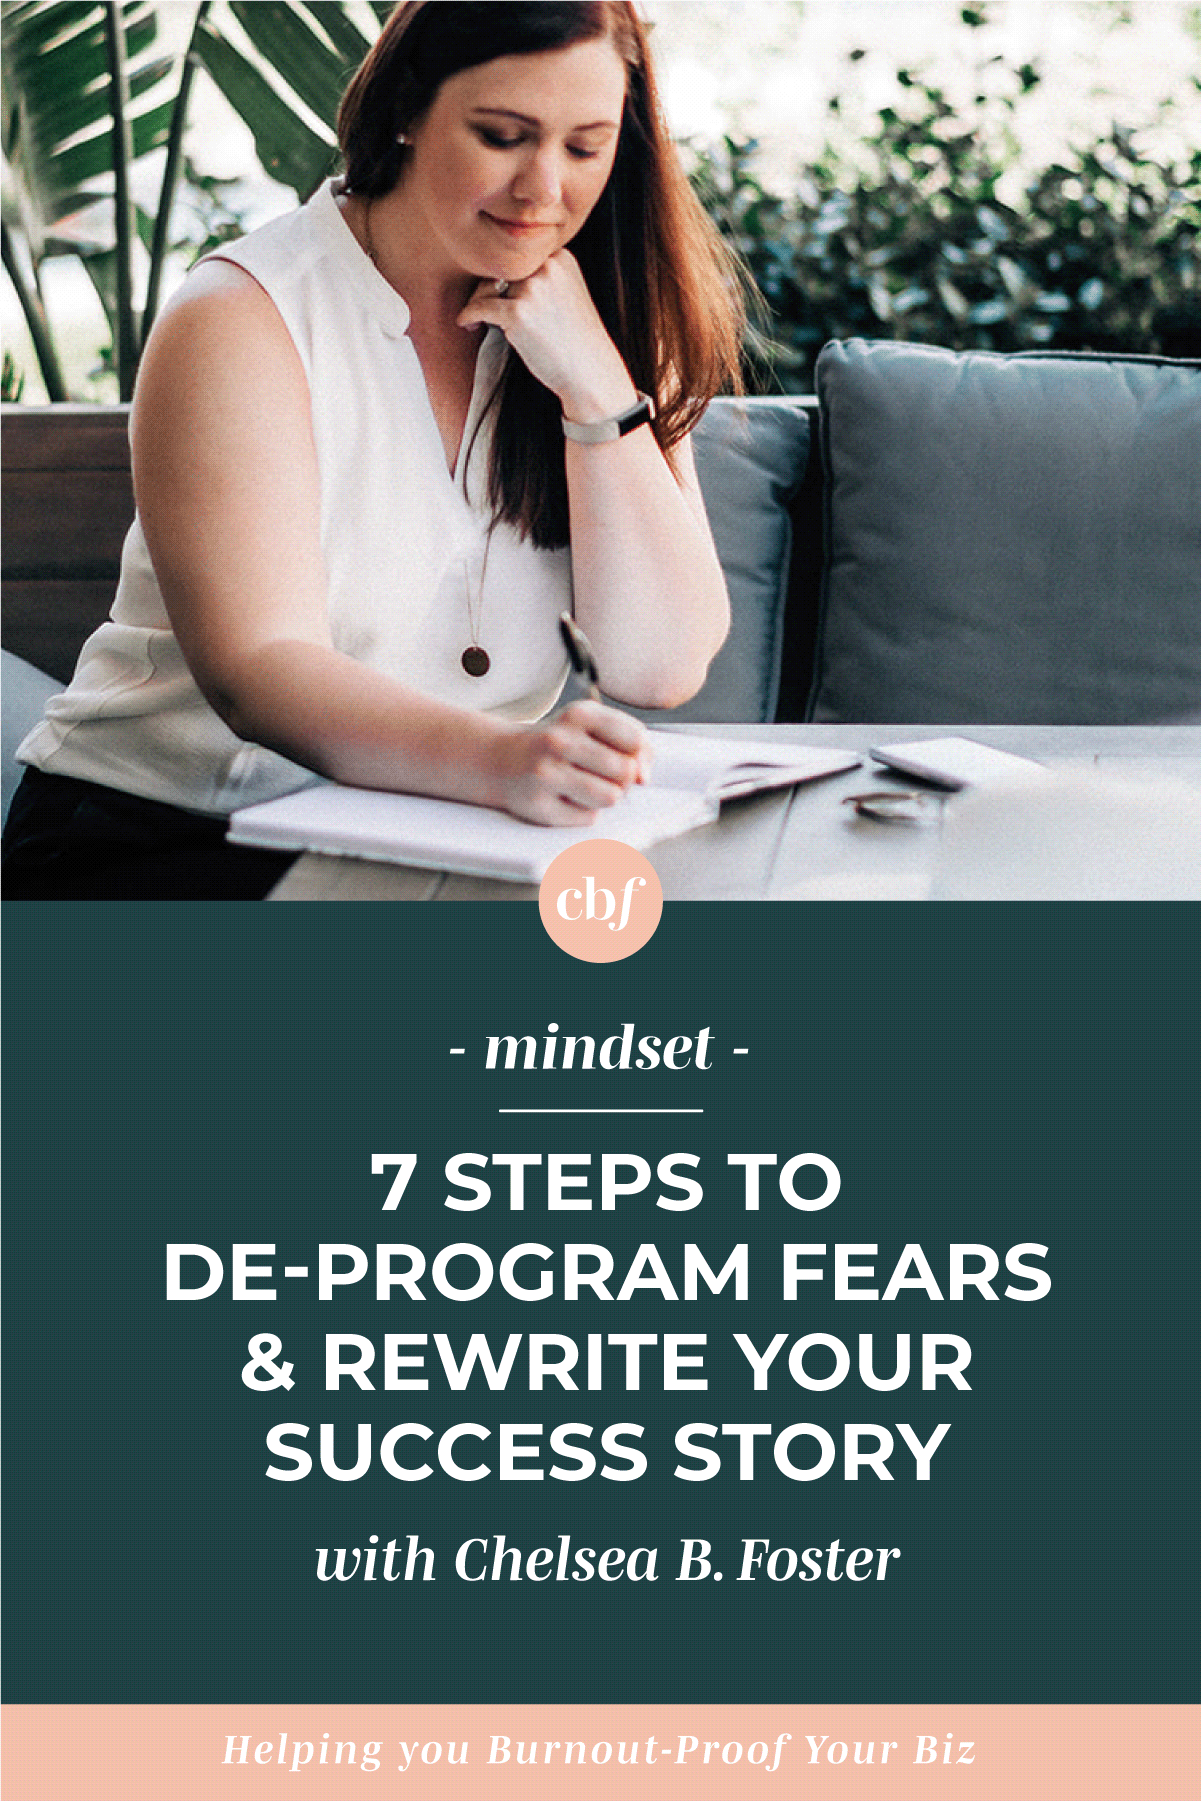 Burnout-Proof Your Biz with Chelsea B Foster | 7 Steps to De-Program Your Fears & Rewrite Your Success Story